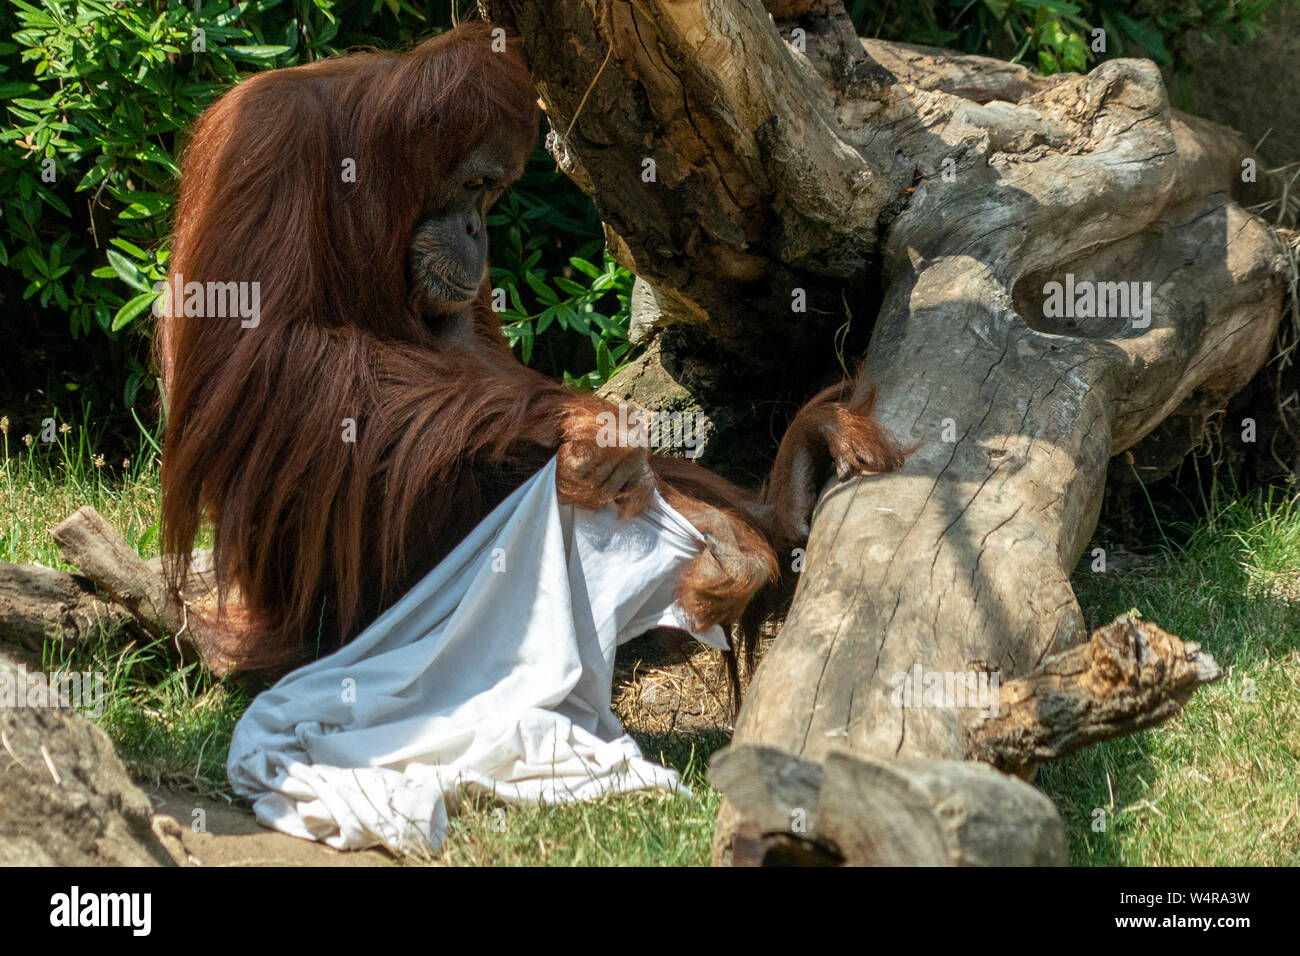 Zooo monkey orang utan ape playing ghost with bed sheets Stock Photo